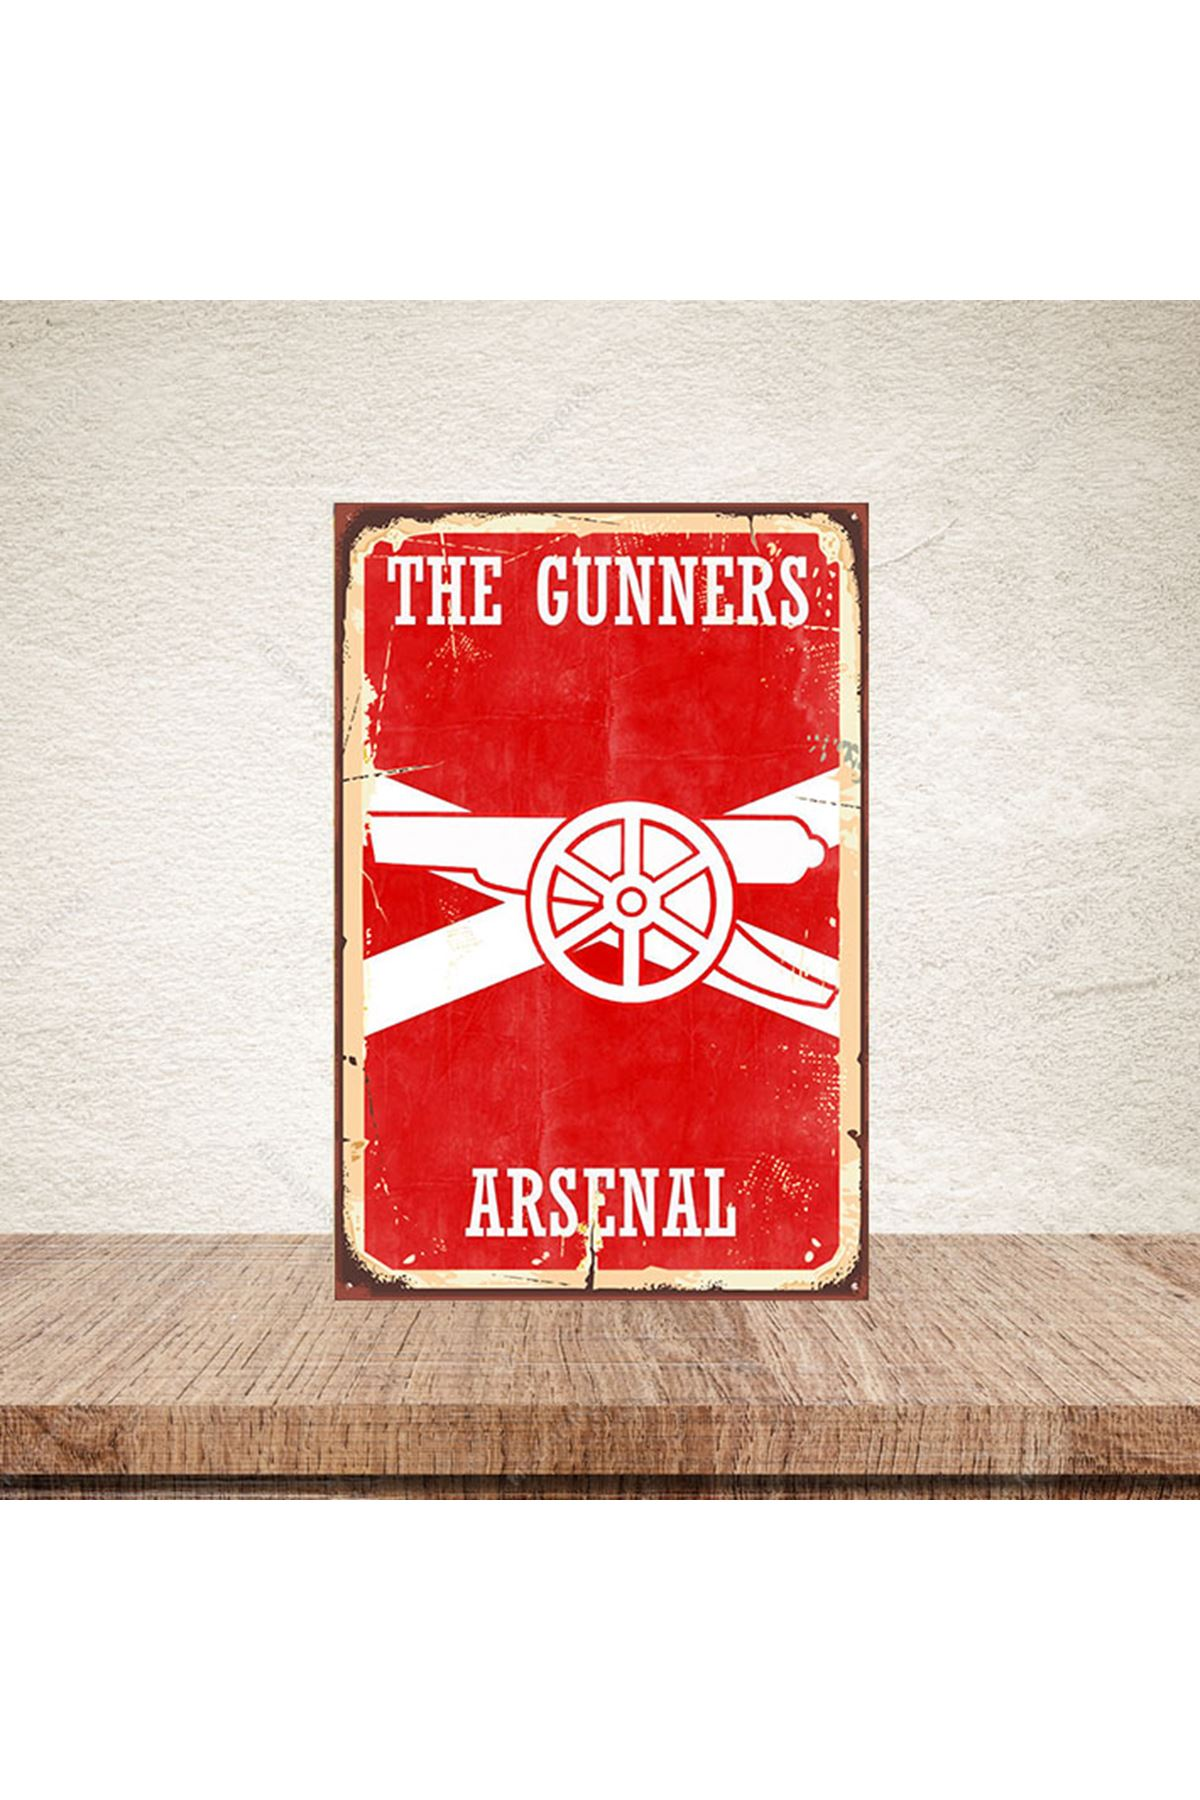 THE GUNNERS ARSENAL - AHŞAP POSTER